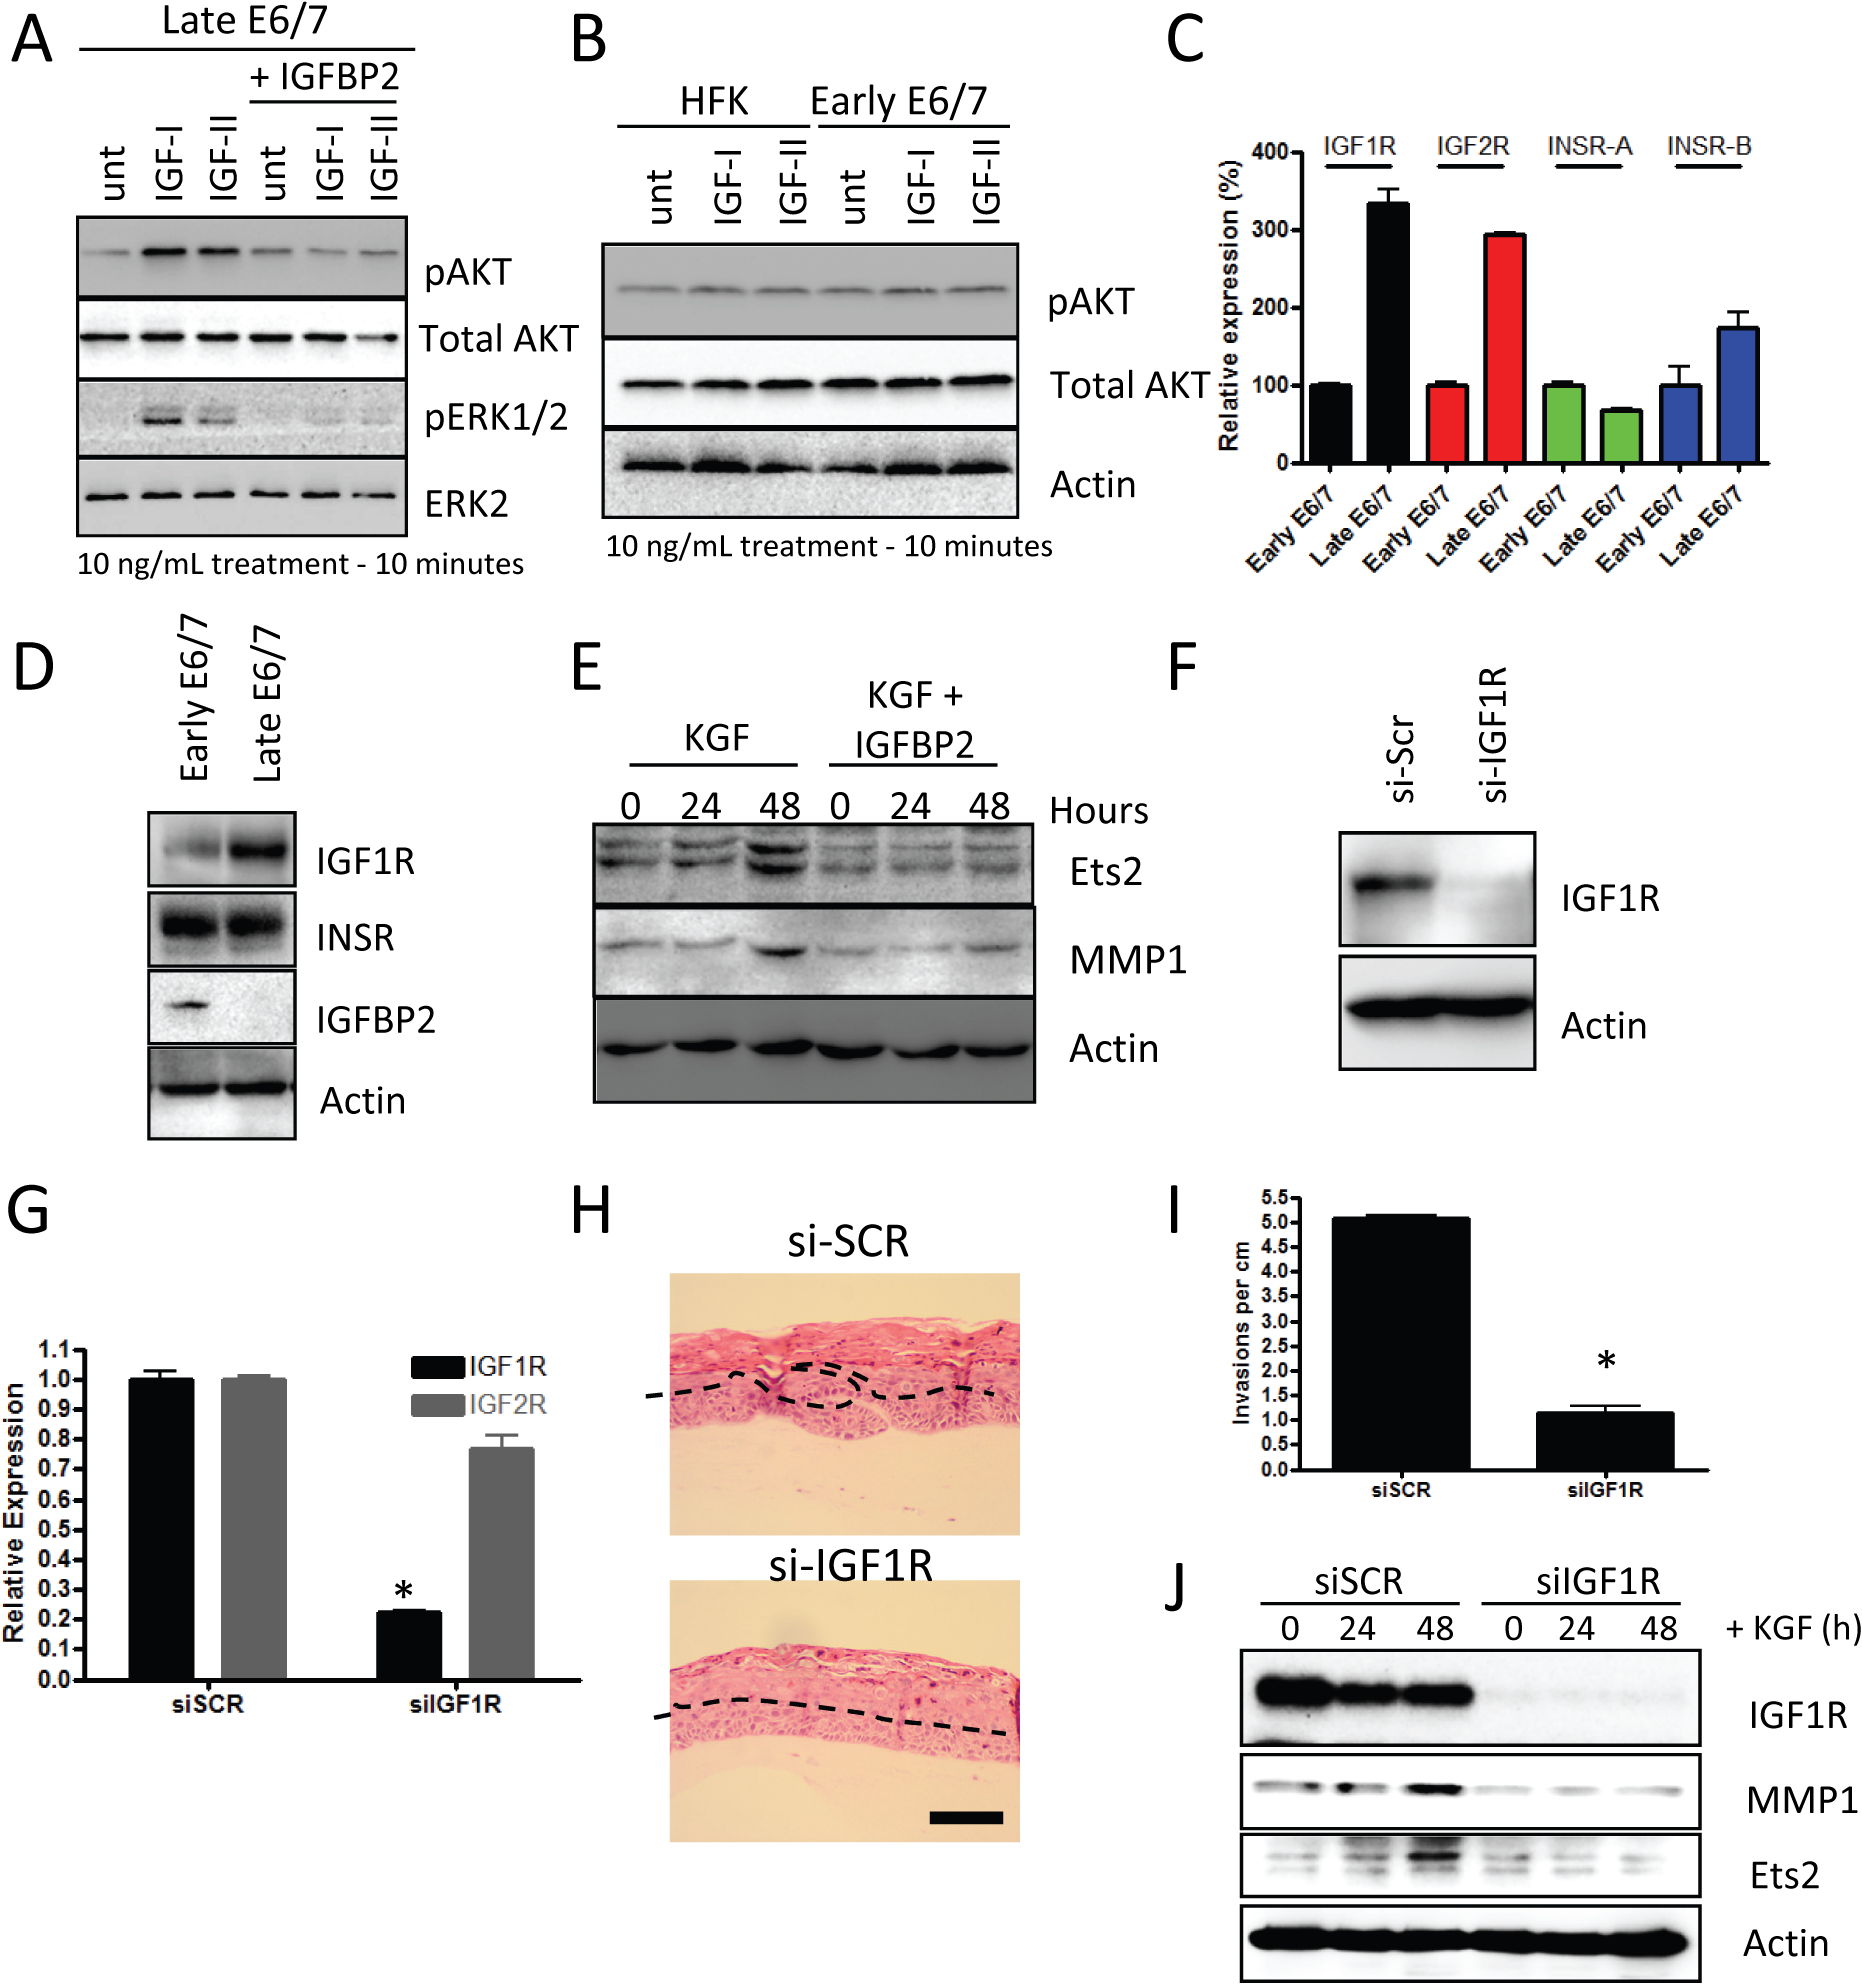 IGFBP2 blocks pro-invasive IGF1R signalling.